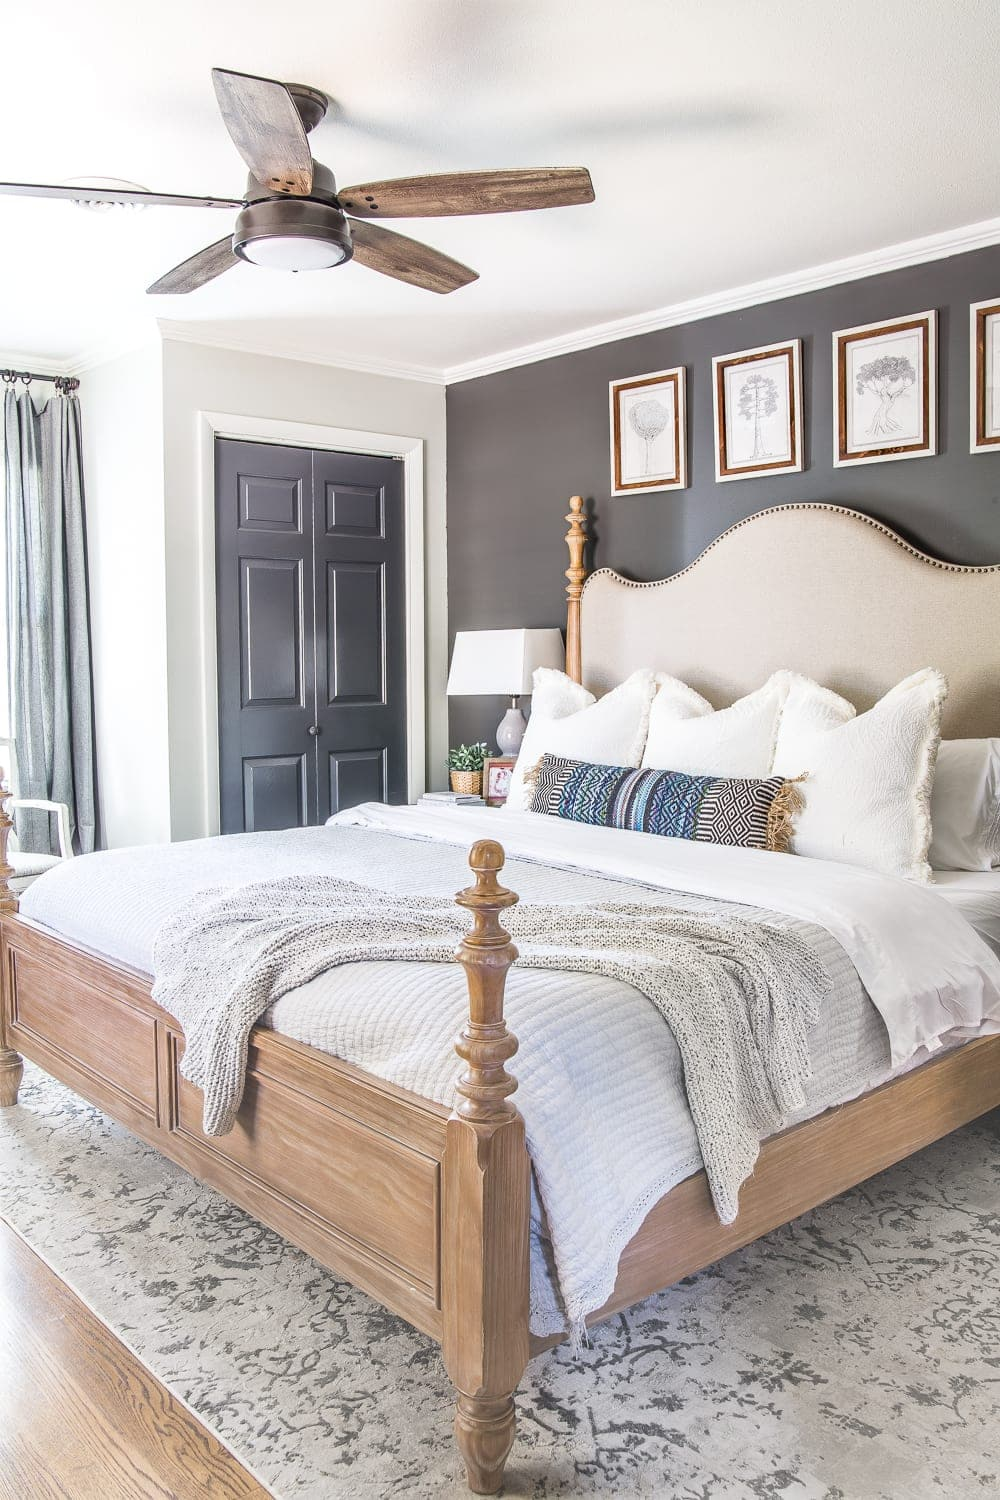 Modern rustic ceiling fan in a master bedroom